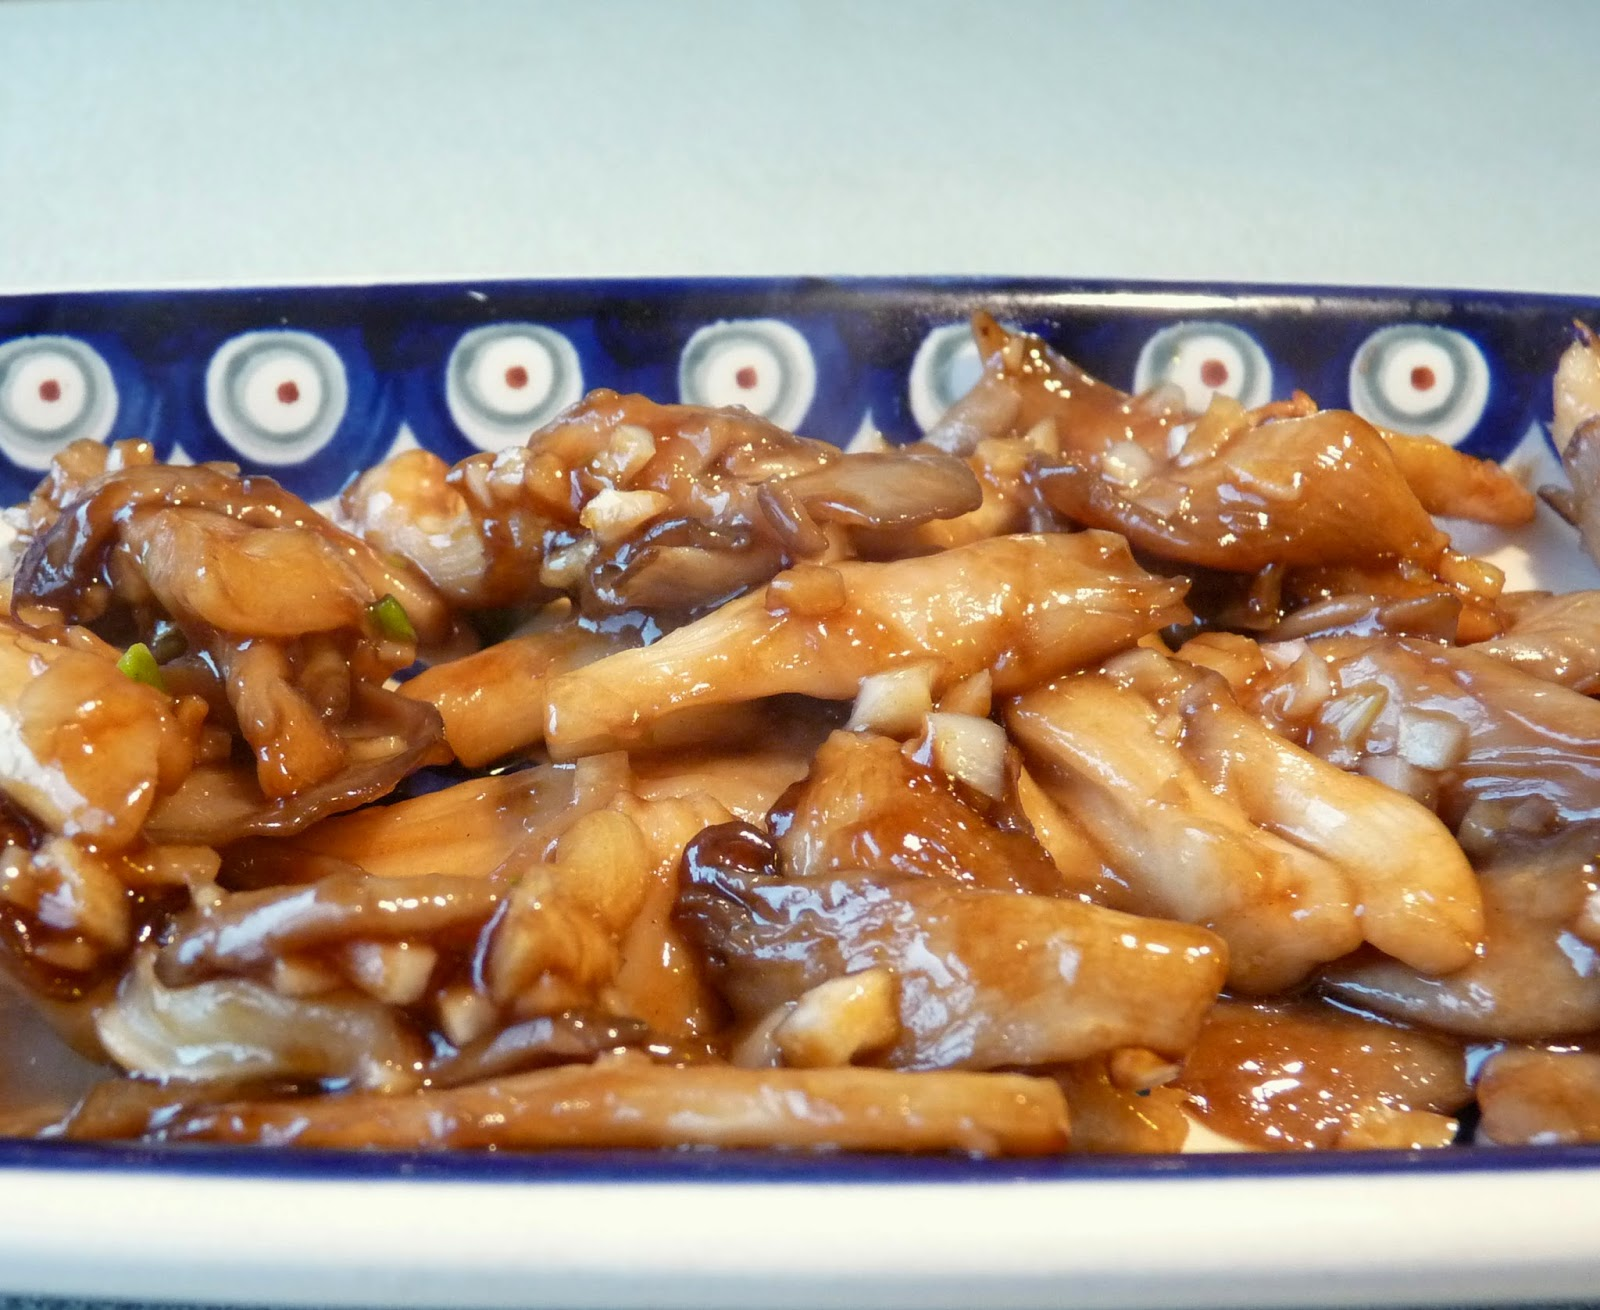 oyster mushrooms in oyster sauce